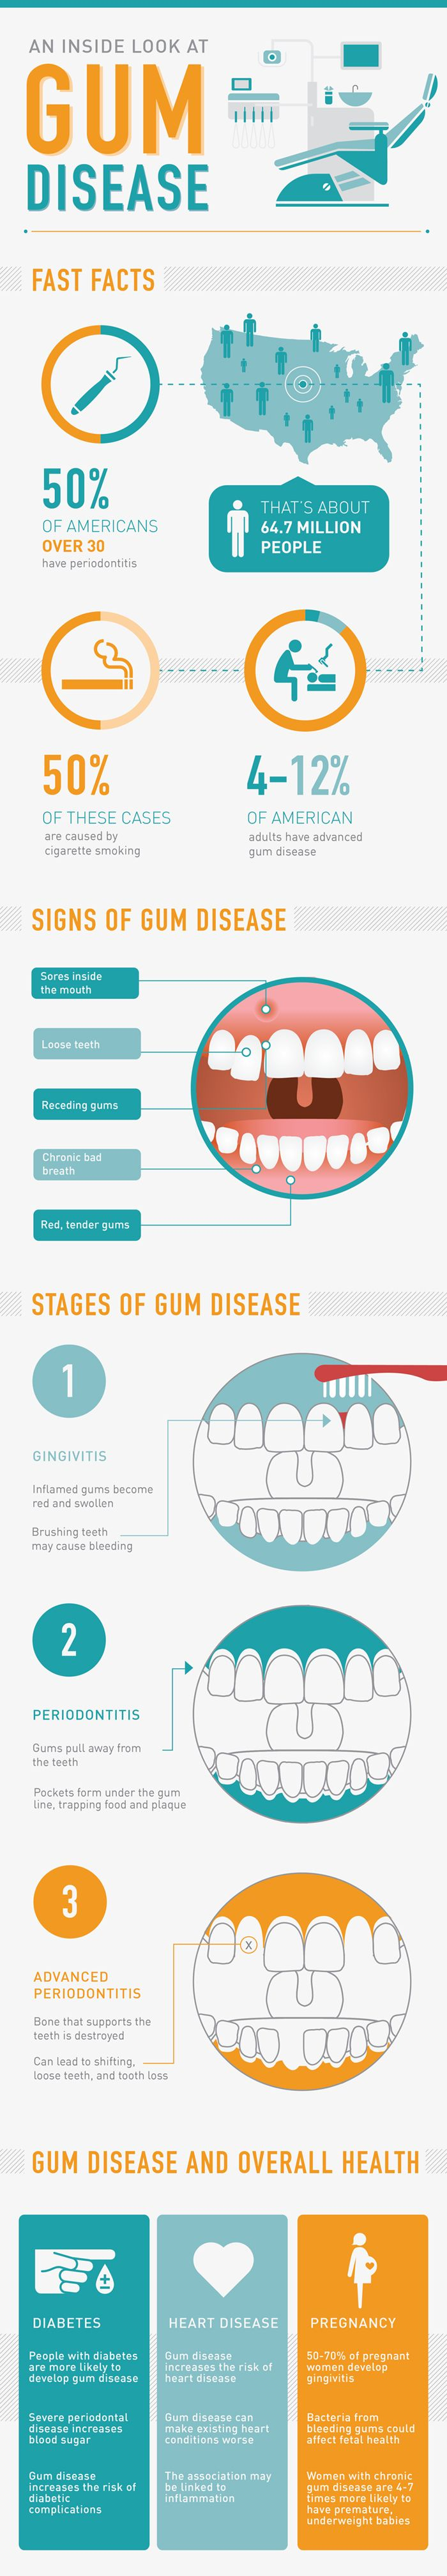 Prisma Dental News -Preventive #Periodontal Treatment  Gum disease is one of the most common #dental problems that affect populations all over the world, regardless of a person´s age. Whether it involves only minor gum inflammation, or if it is in a more severe stage such as #gingivitis or #periodontitis, the condition requires to be treated immediately to avoid major damage to a person´s #oralhealth.  http://prismadental.com/perio-protect-the-non-invasive-preventive-periodontal-treatment/